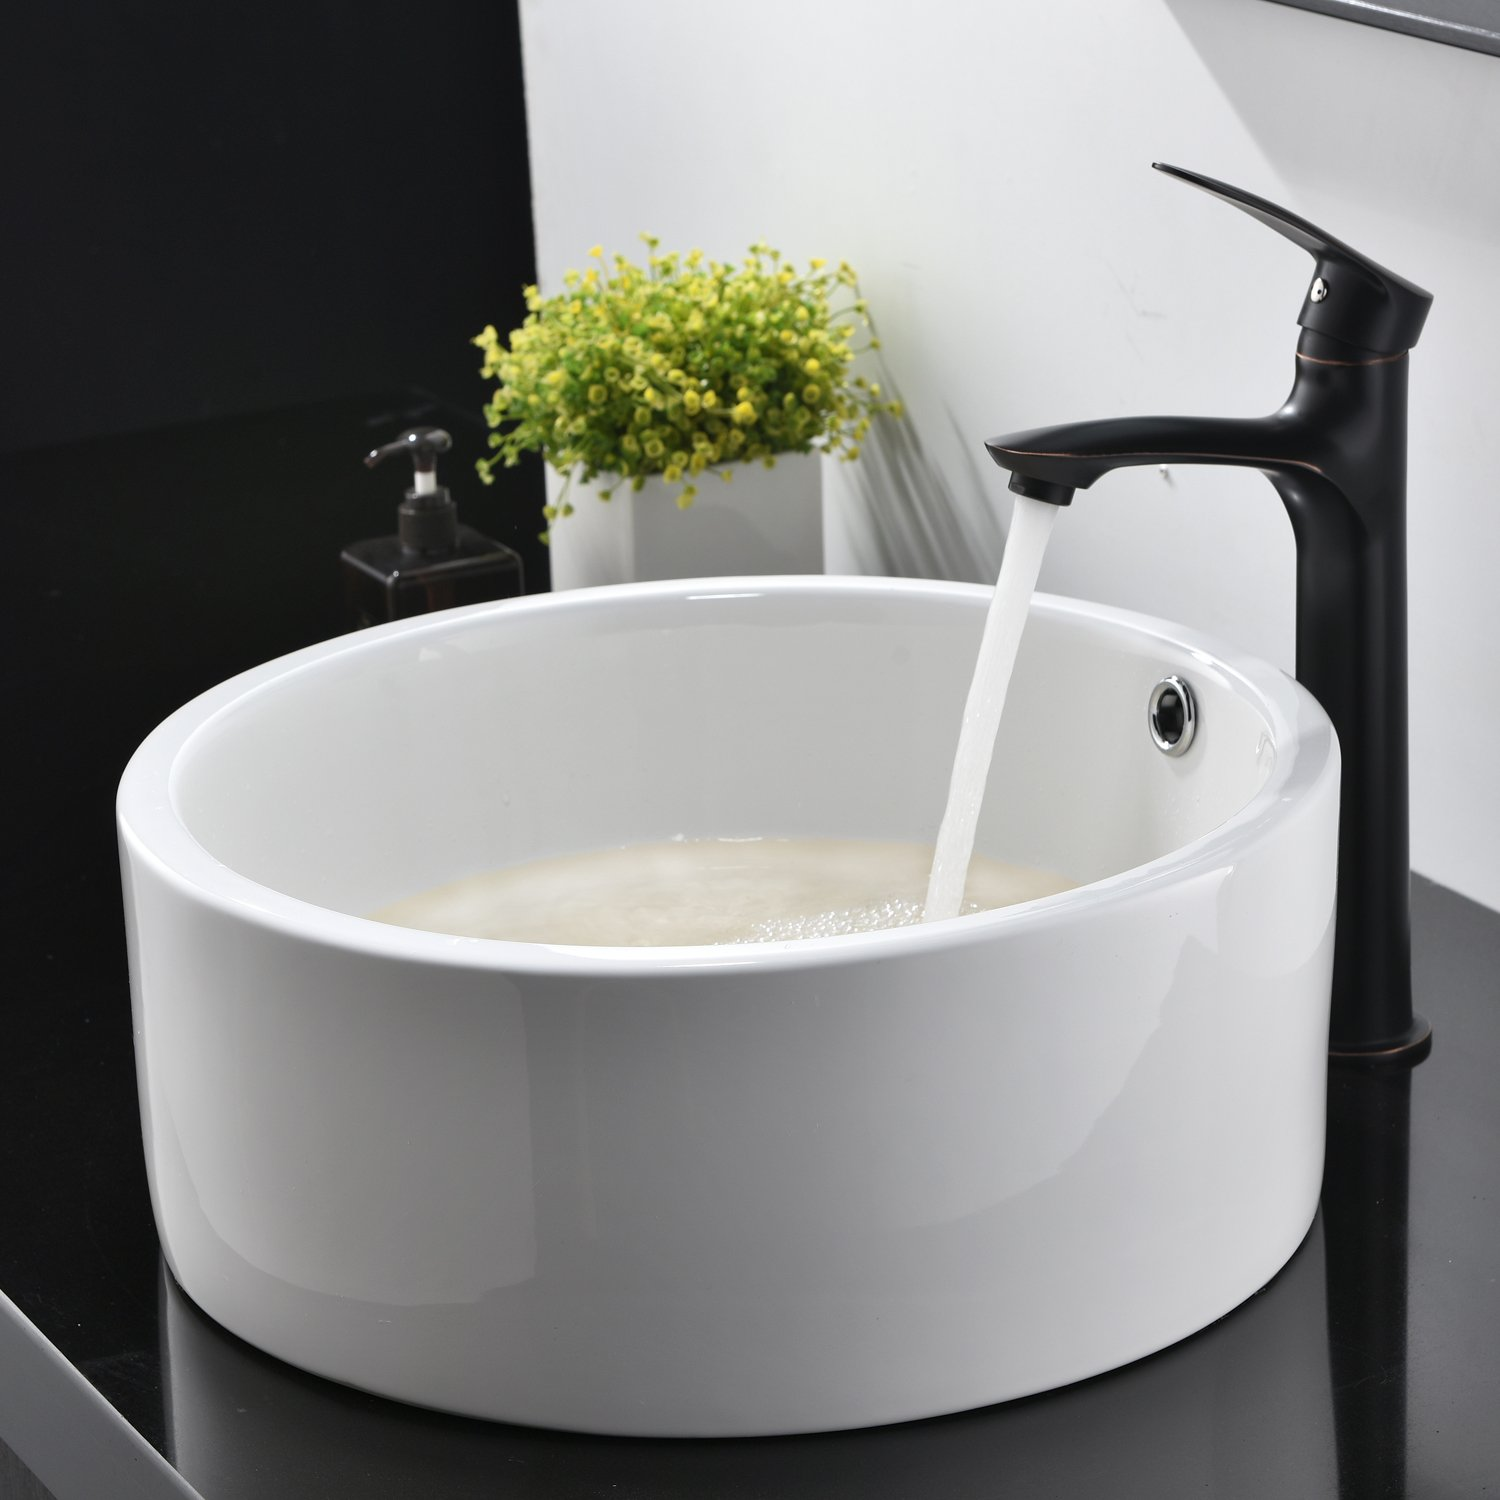 Hotis White Porcelain Ceramic Countertop Bowl Lavatory Round Above Counter Vanity Bathroom Vessel Sink by HOTIS HOME (Image #4)